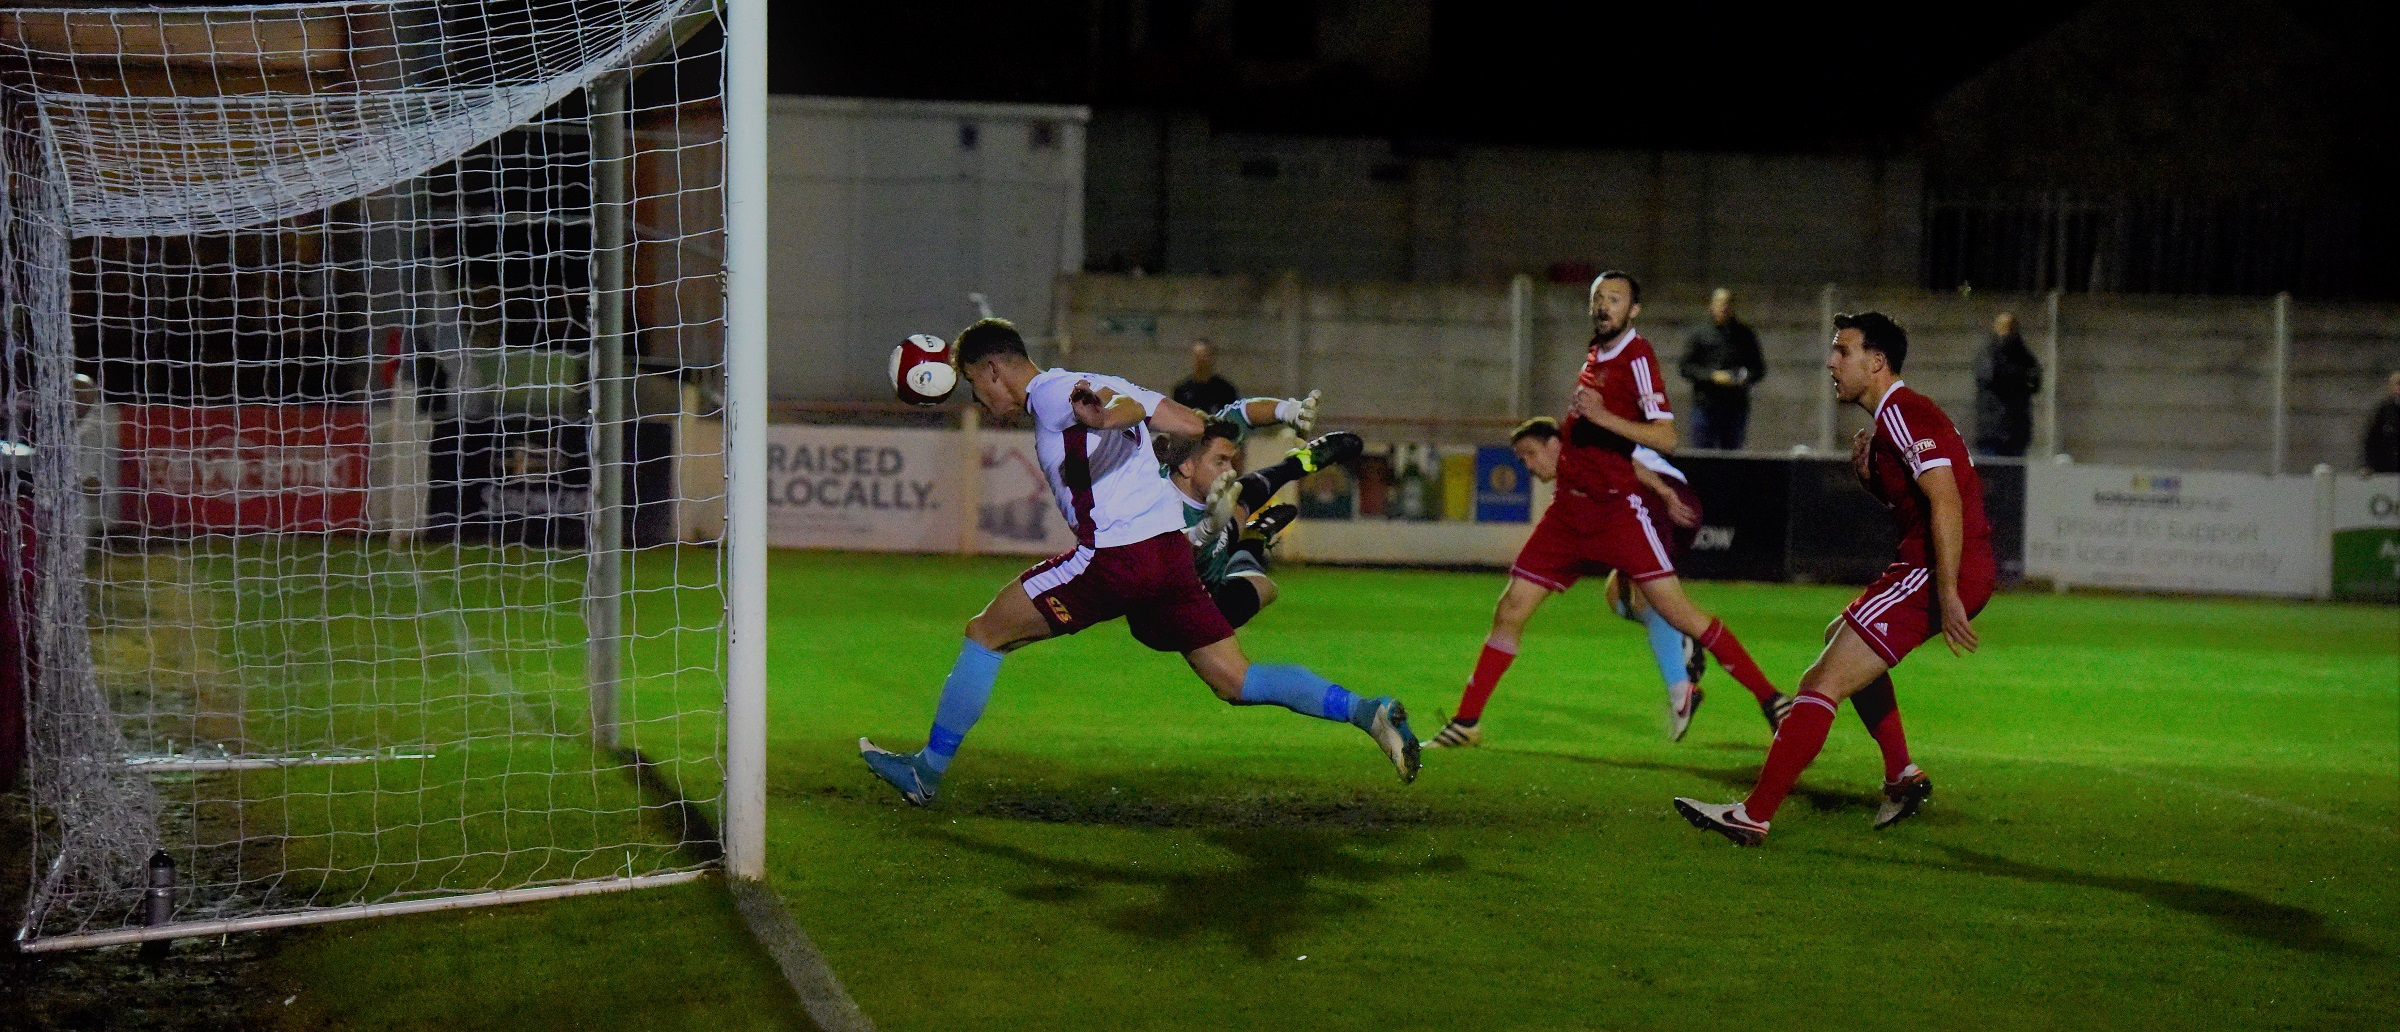 Ossett Town vs South Shields